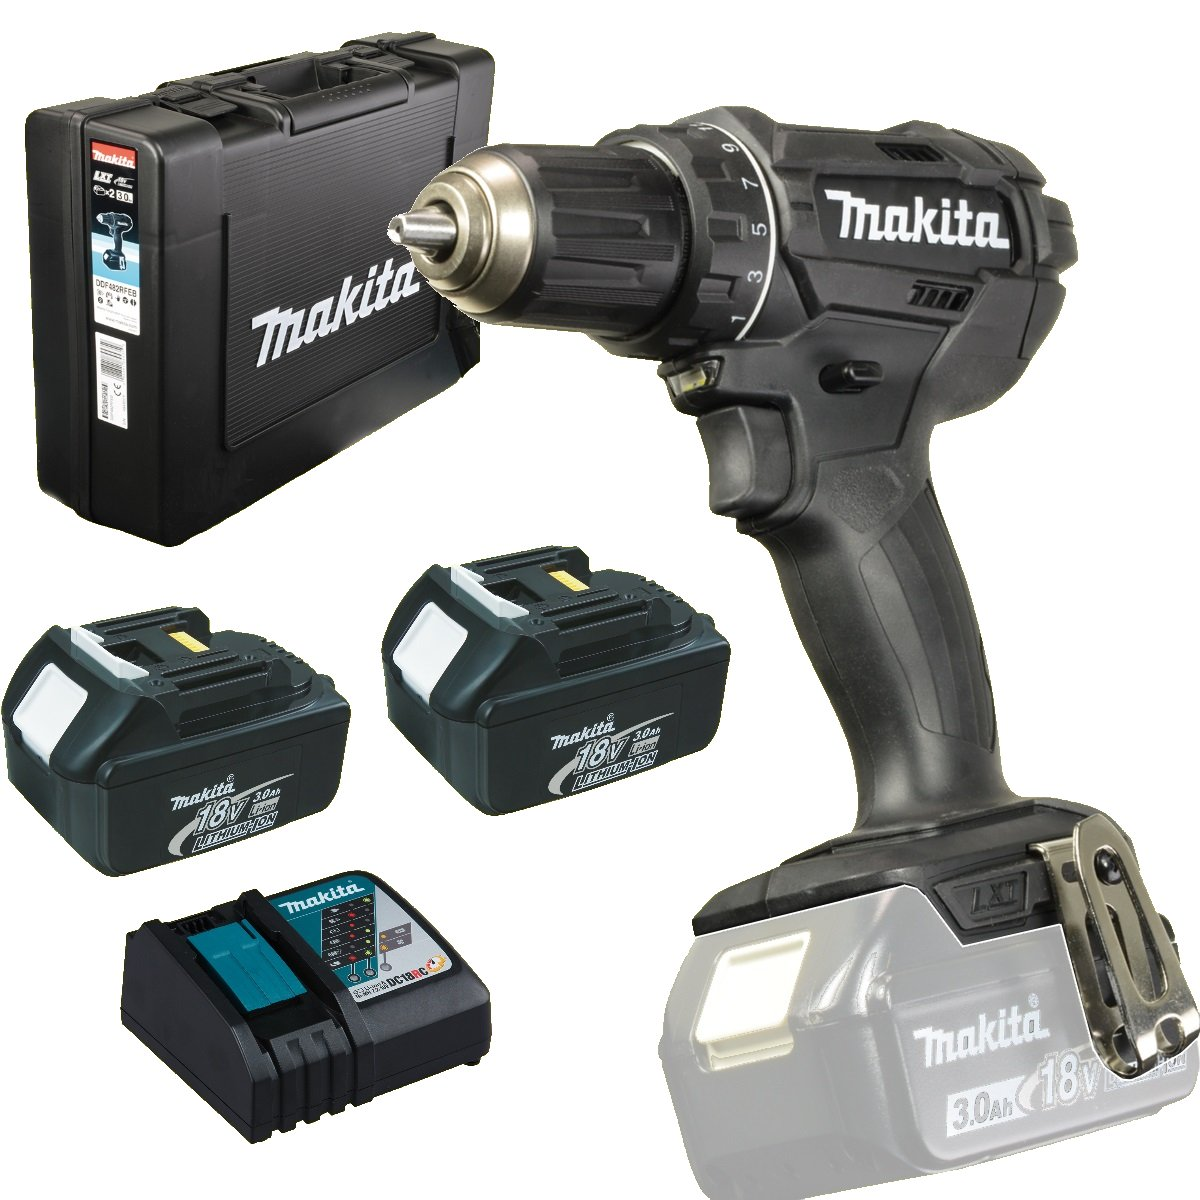 PROMOTION MAKITA LIMITED EDITION